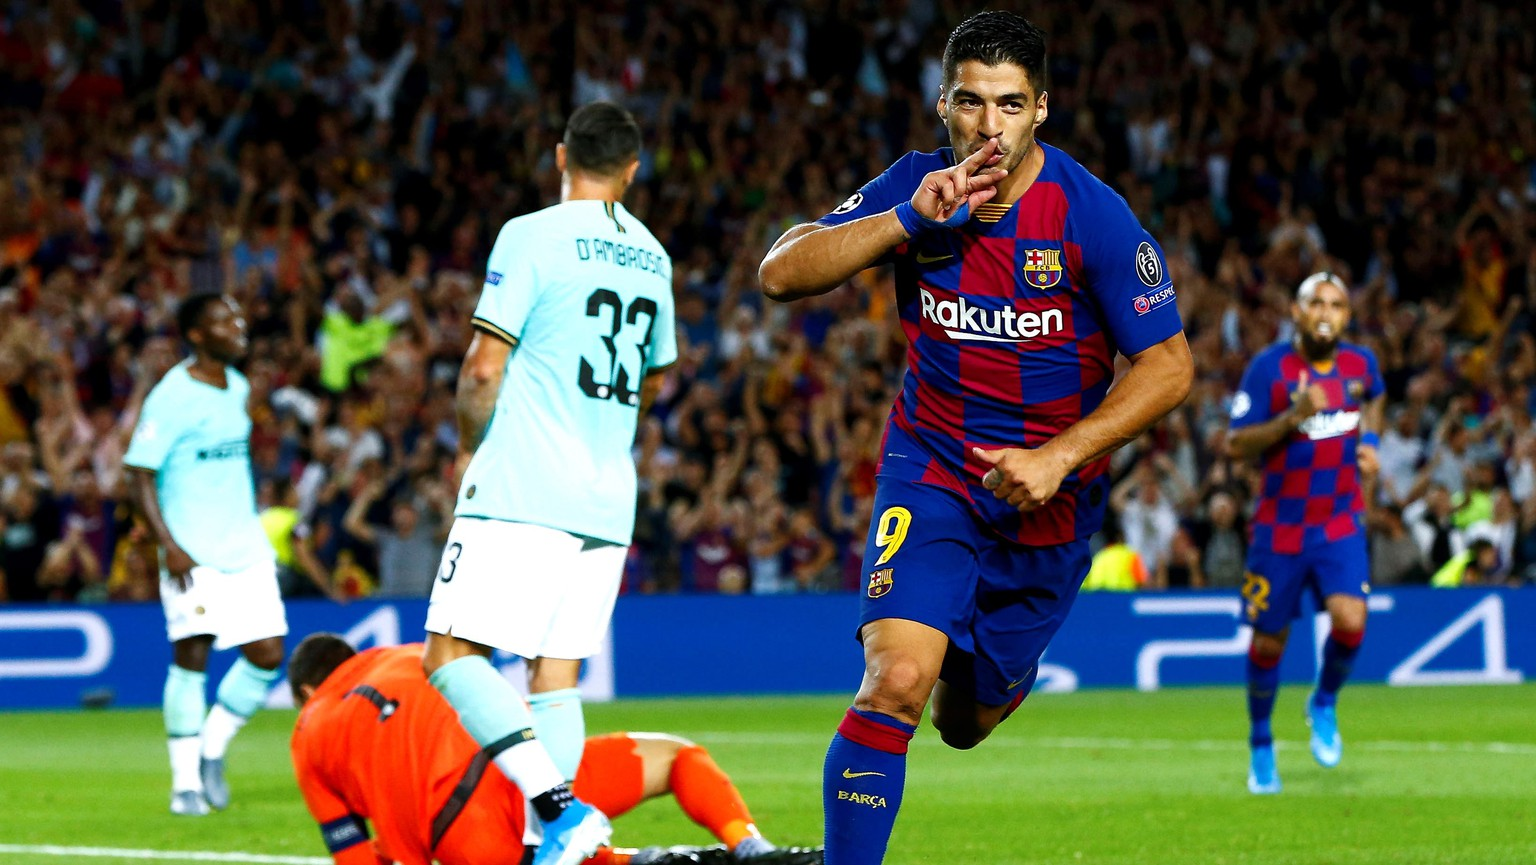 epaselect epa07890590 FC Barcelona's forward Luis Suarez celebrates after scoring the 2-1 goal during the UEFA Champions League group F soccer match between FC Barcelona and FC Internazionale at Camp Nou Stadium in Barcelona, Catalonia, Spain, 02 October 2019.  EPA/Enric Fontcuberta